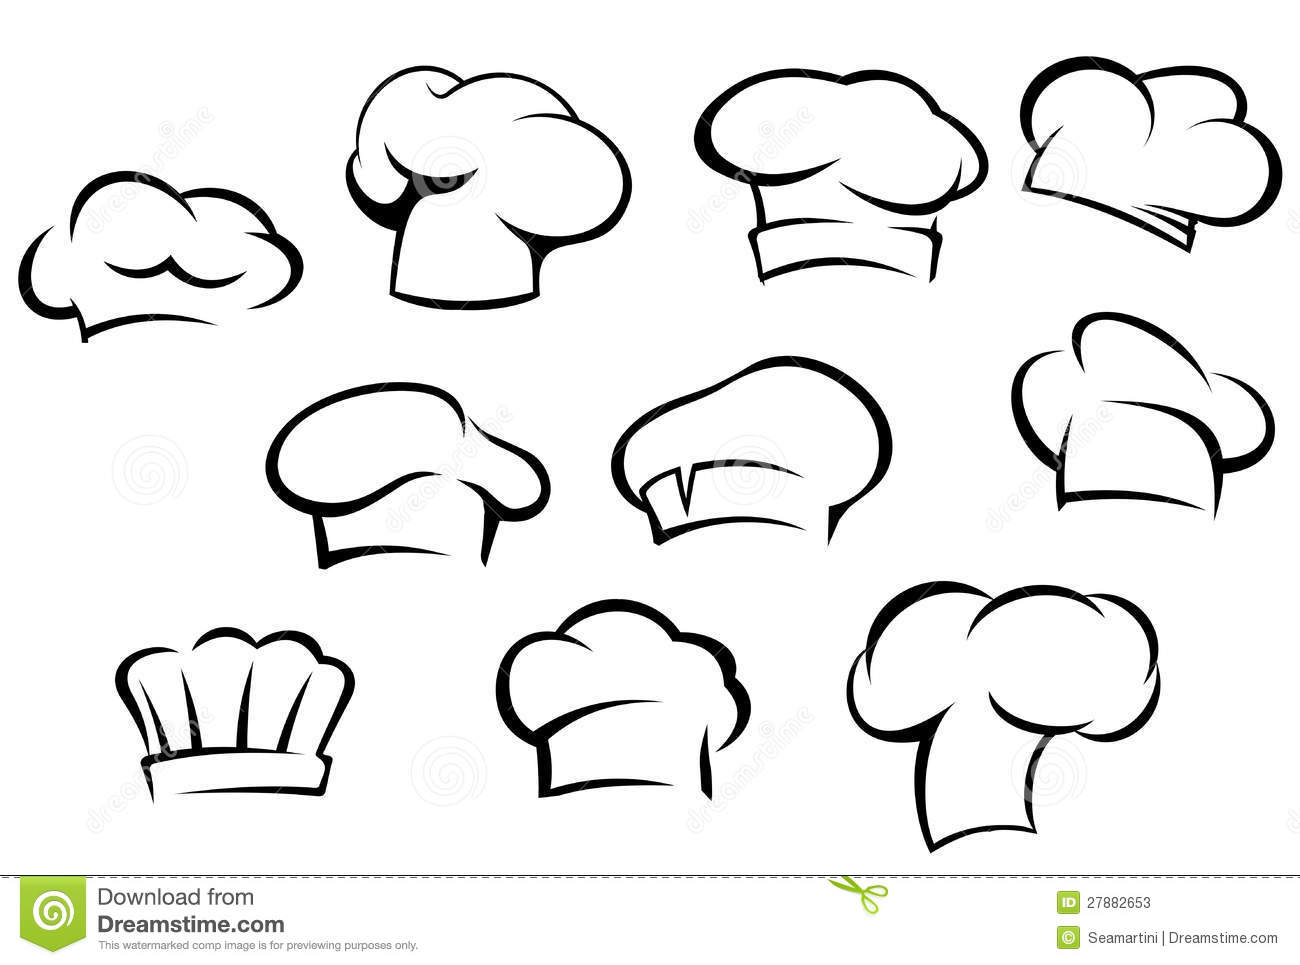 White chef hats and caps stock vector. Image of cooked